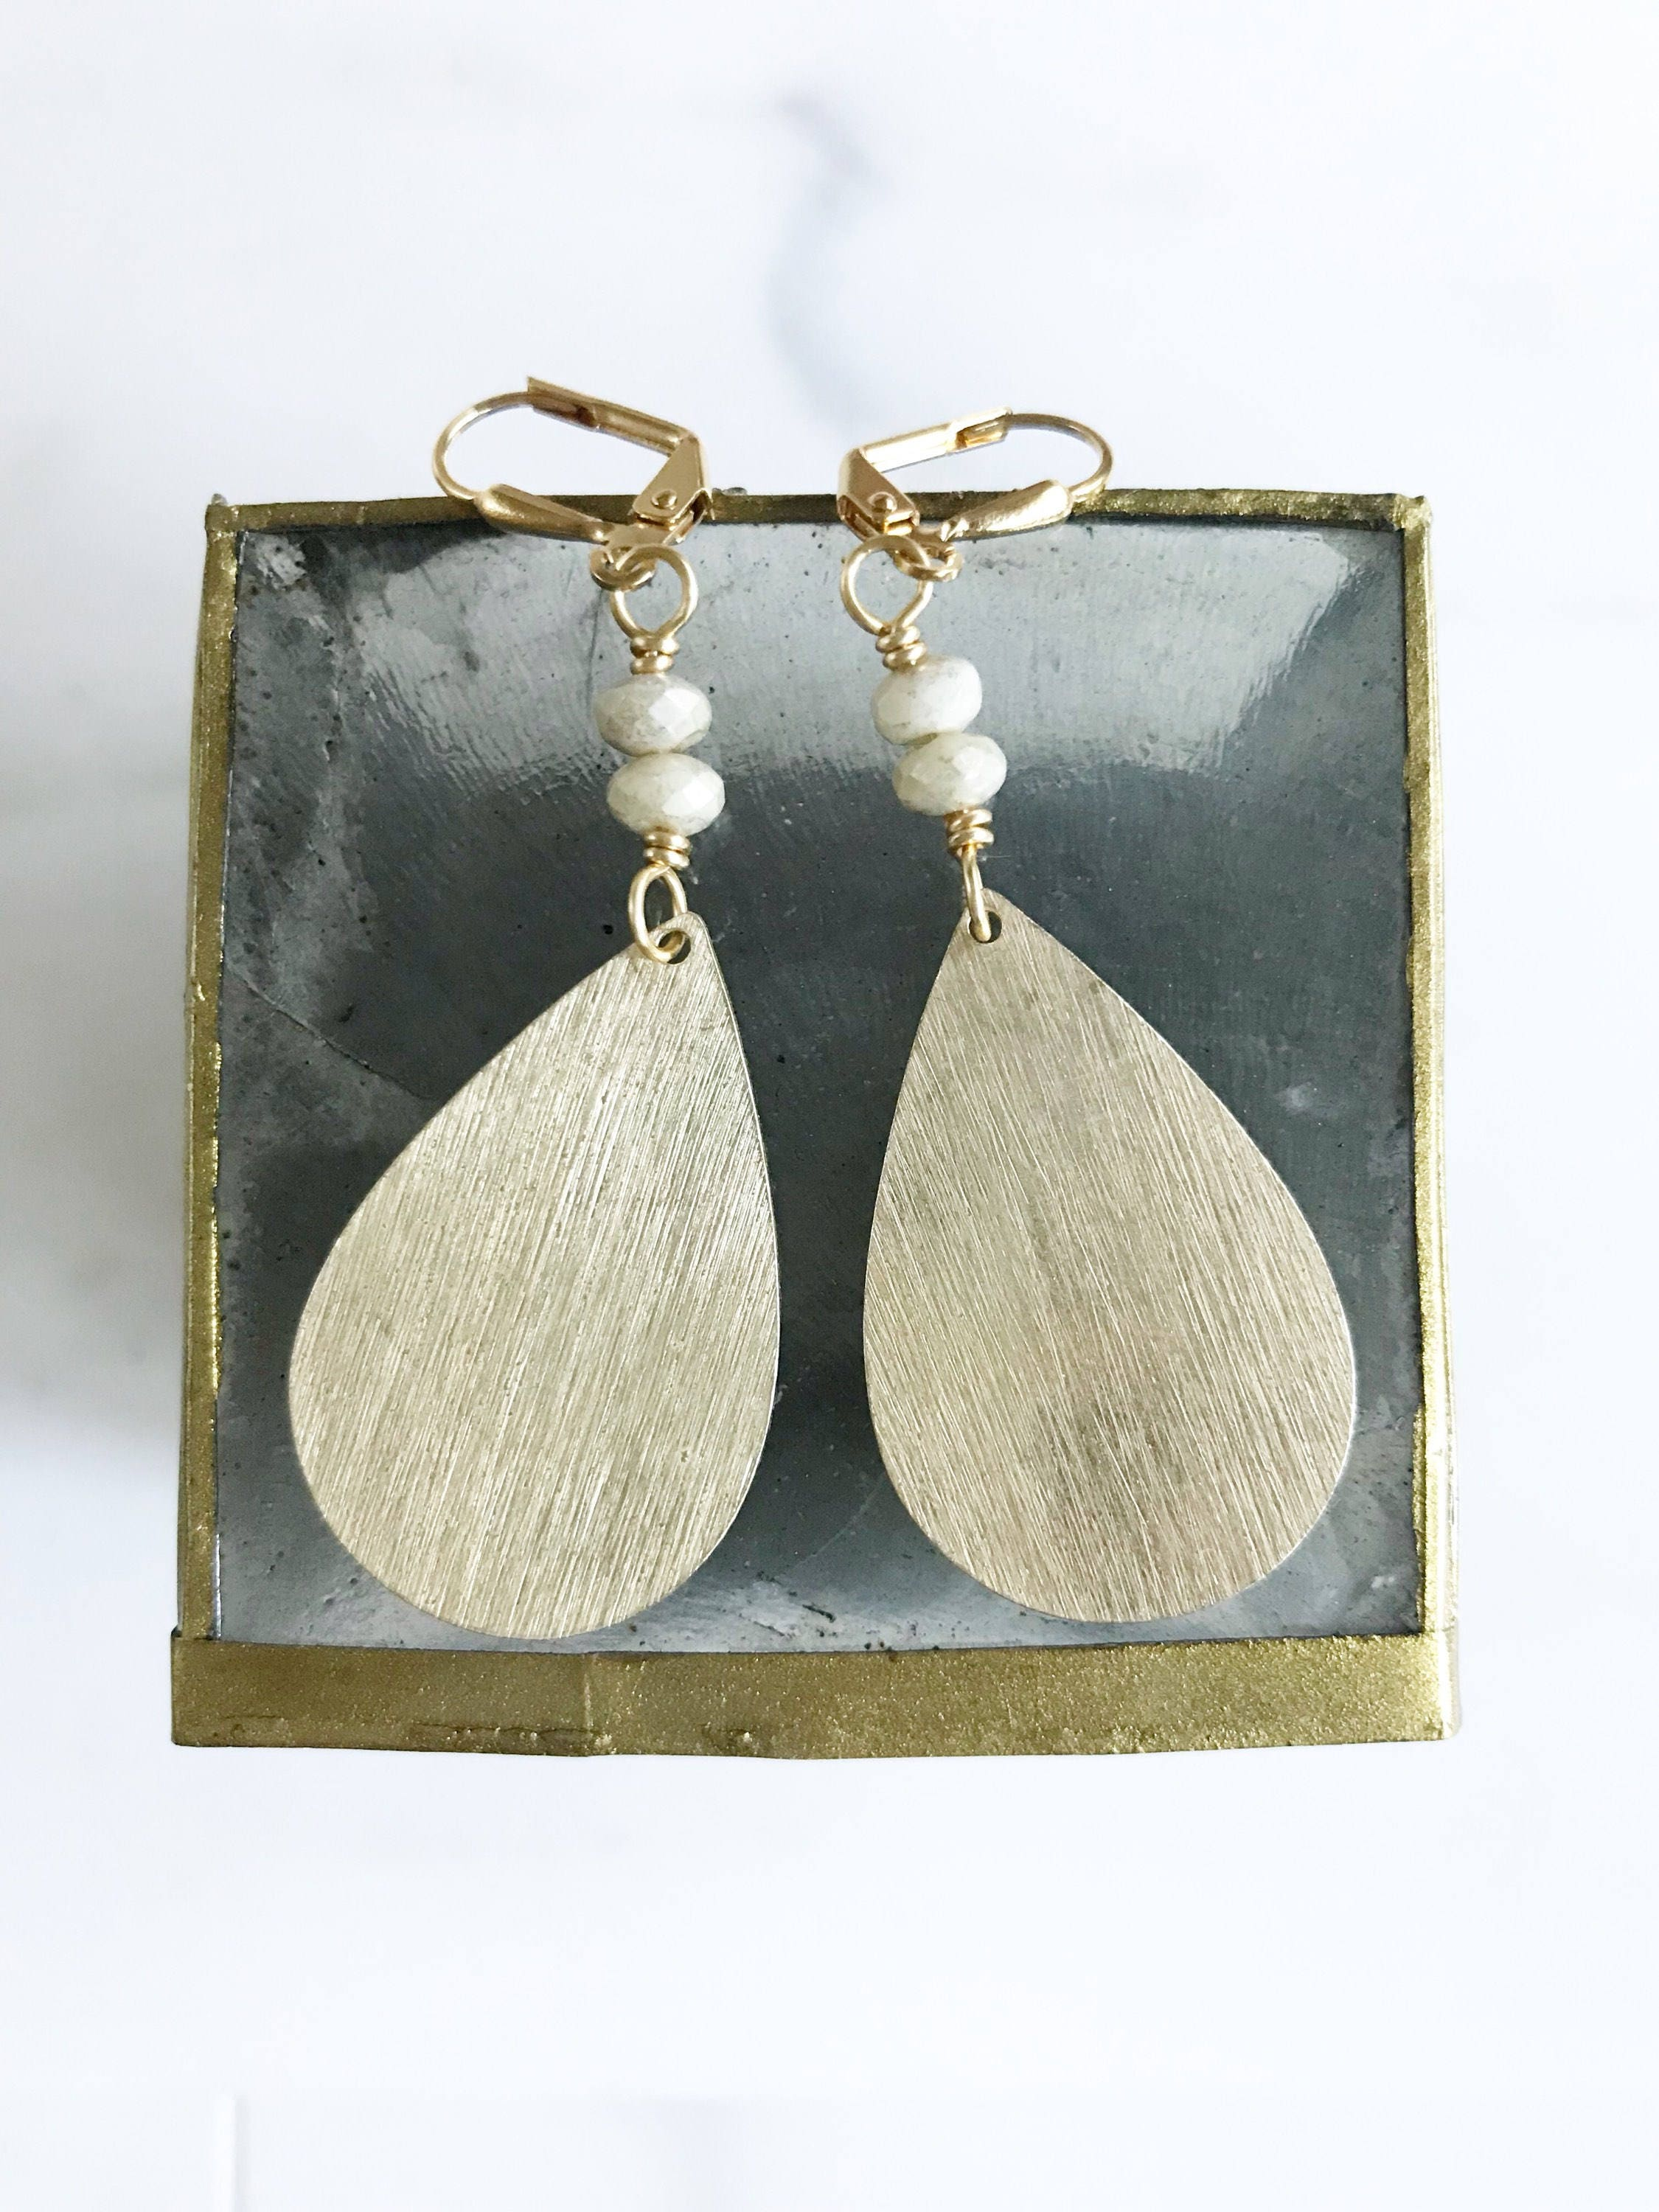 Brushed Gold Chandelier Earrings Dangle Earrings Statement